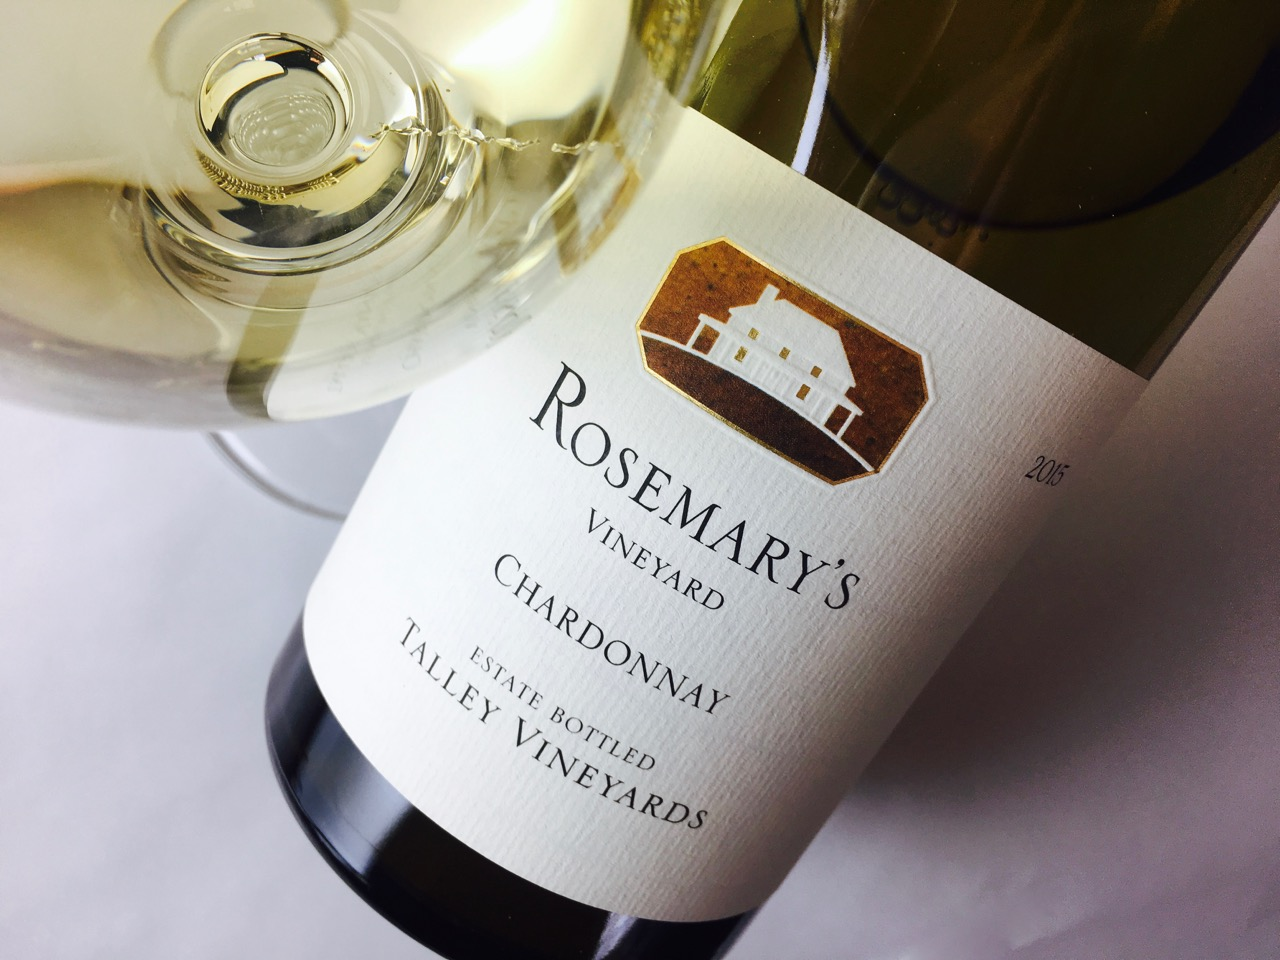 2015 Talley Vineyards Chardonnay Rosemary's Vineyard Arroyo Grande Valley